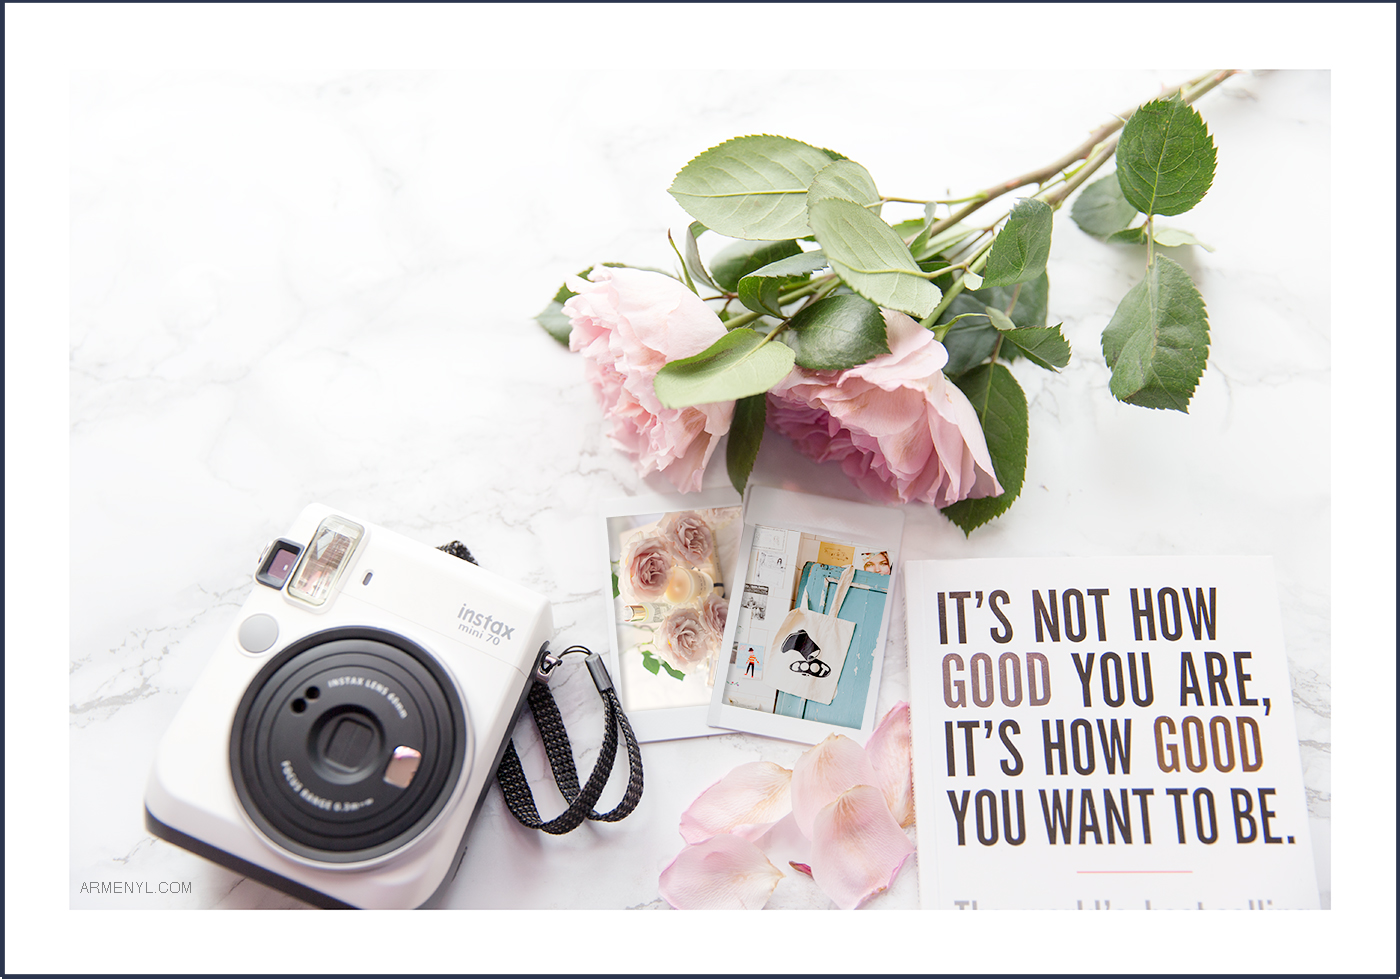 beautiful Flatlay it's not how good you are its how good you want to be by Paul Arden, install polaroid camera photo by Armenyl.com